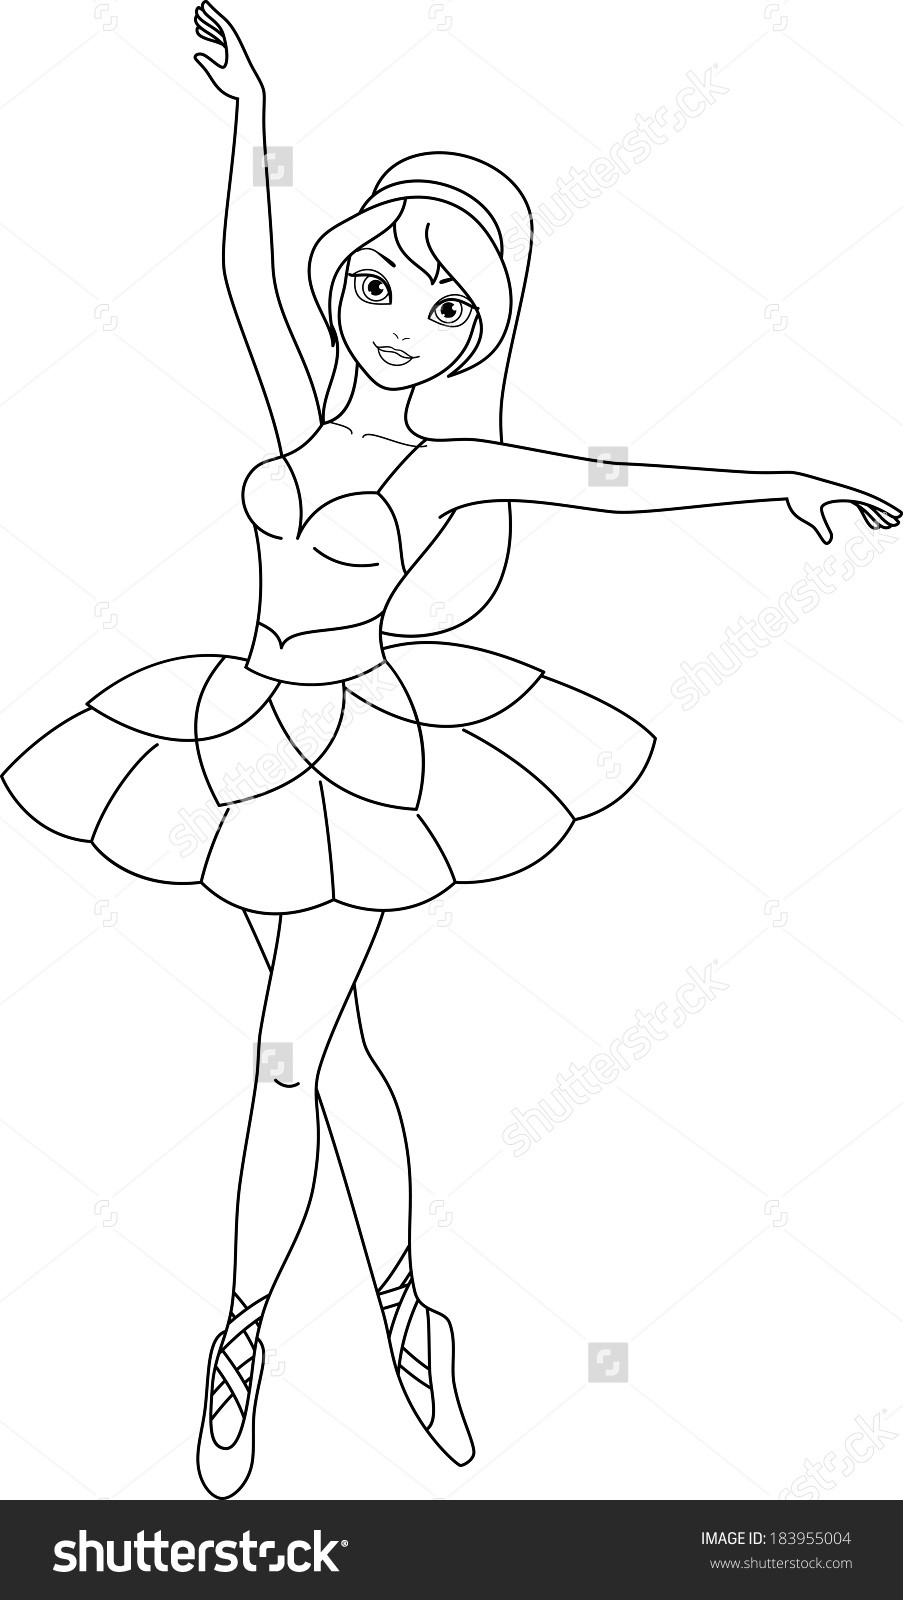 Ballarina Coloring Pages  Value Ballerina Colouring Page Mainstream Ballet Coloring